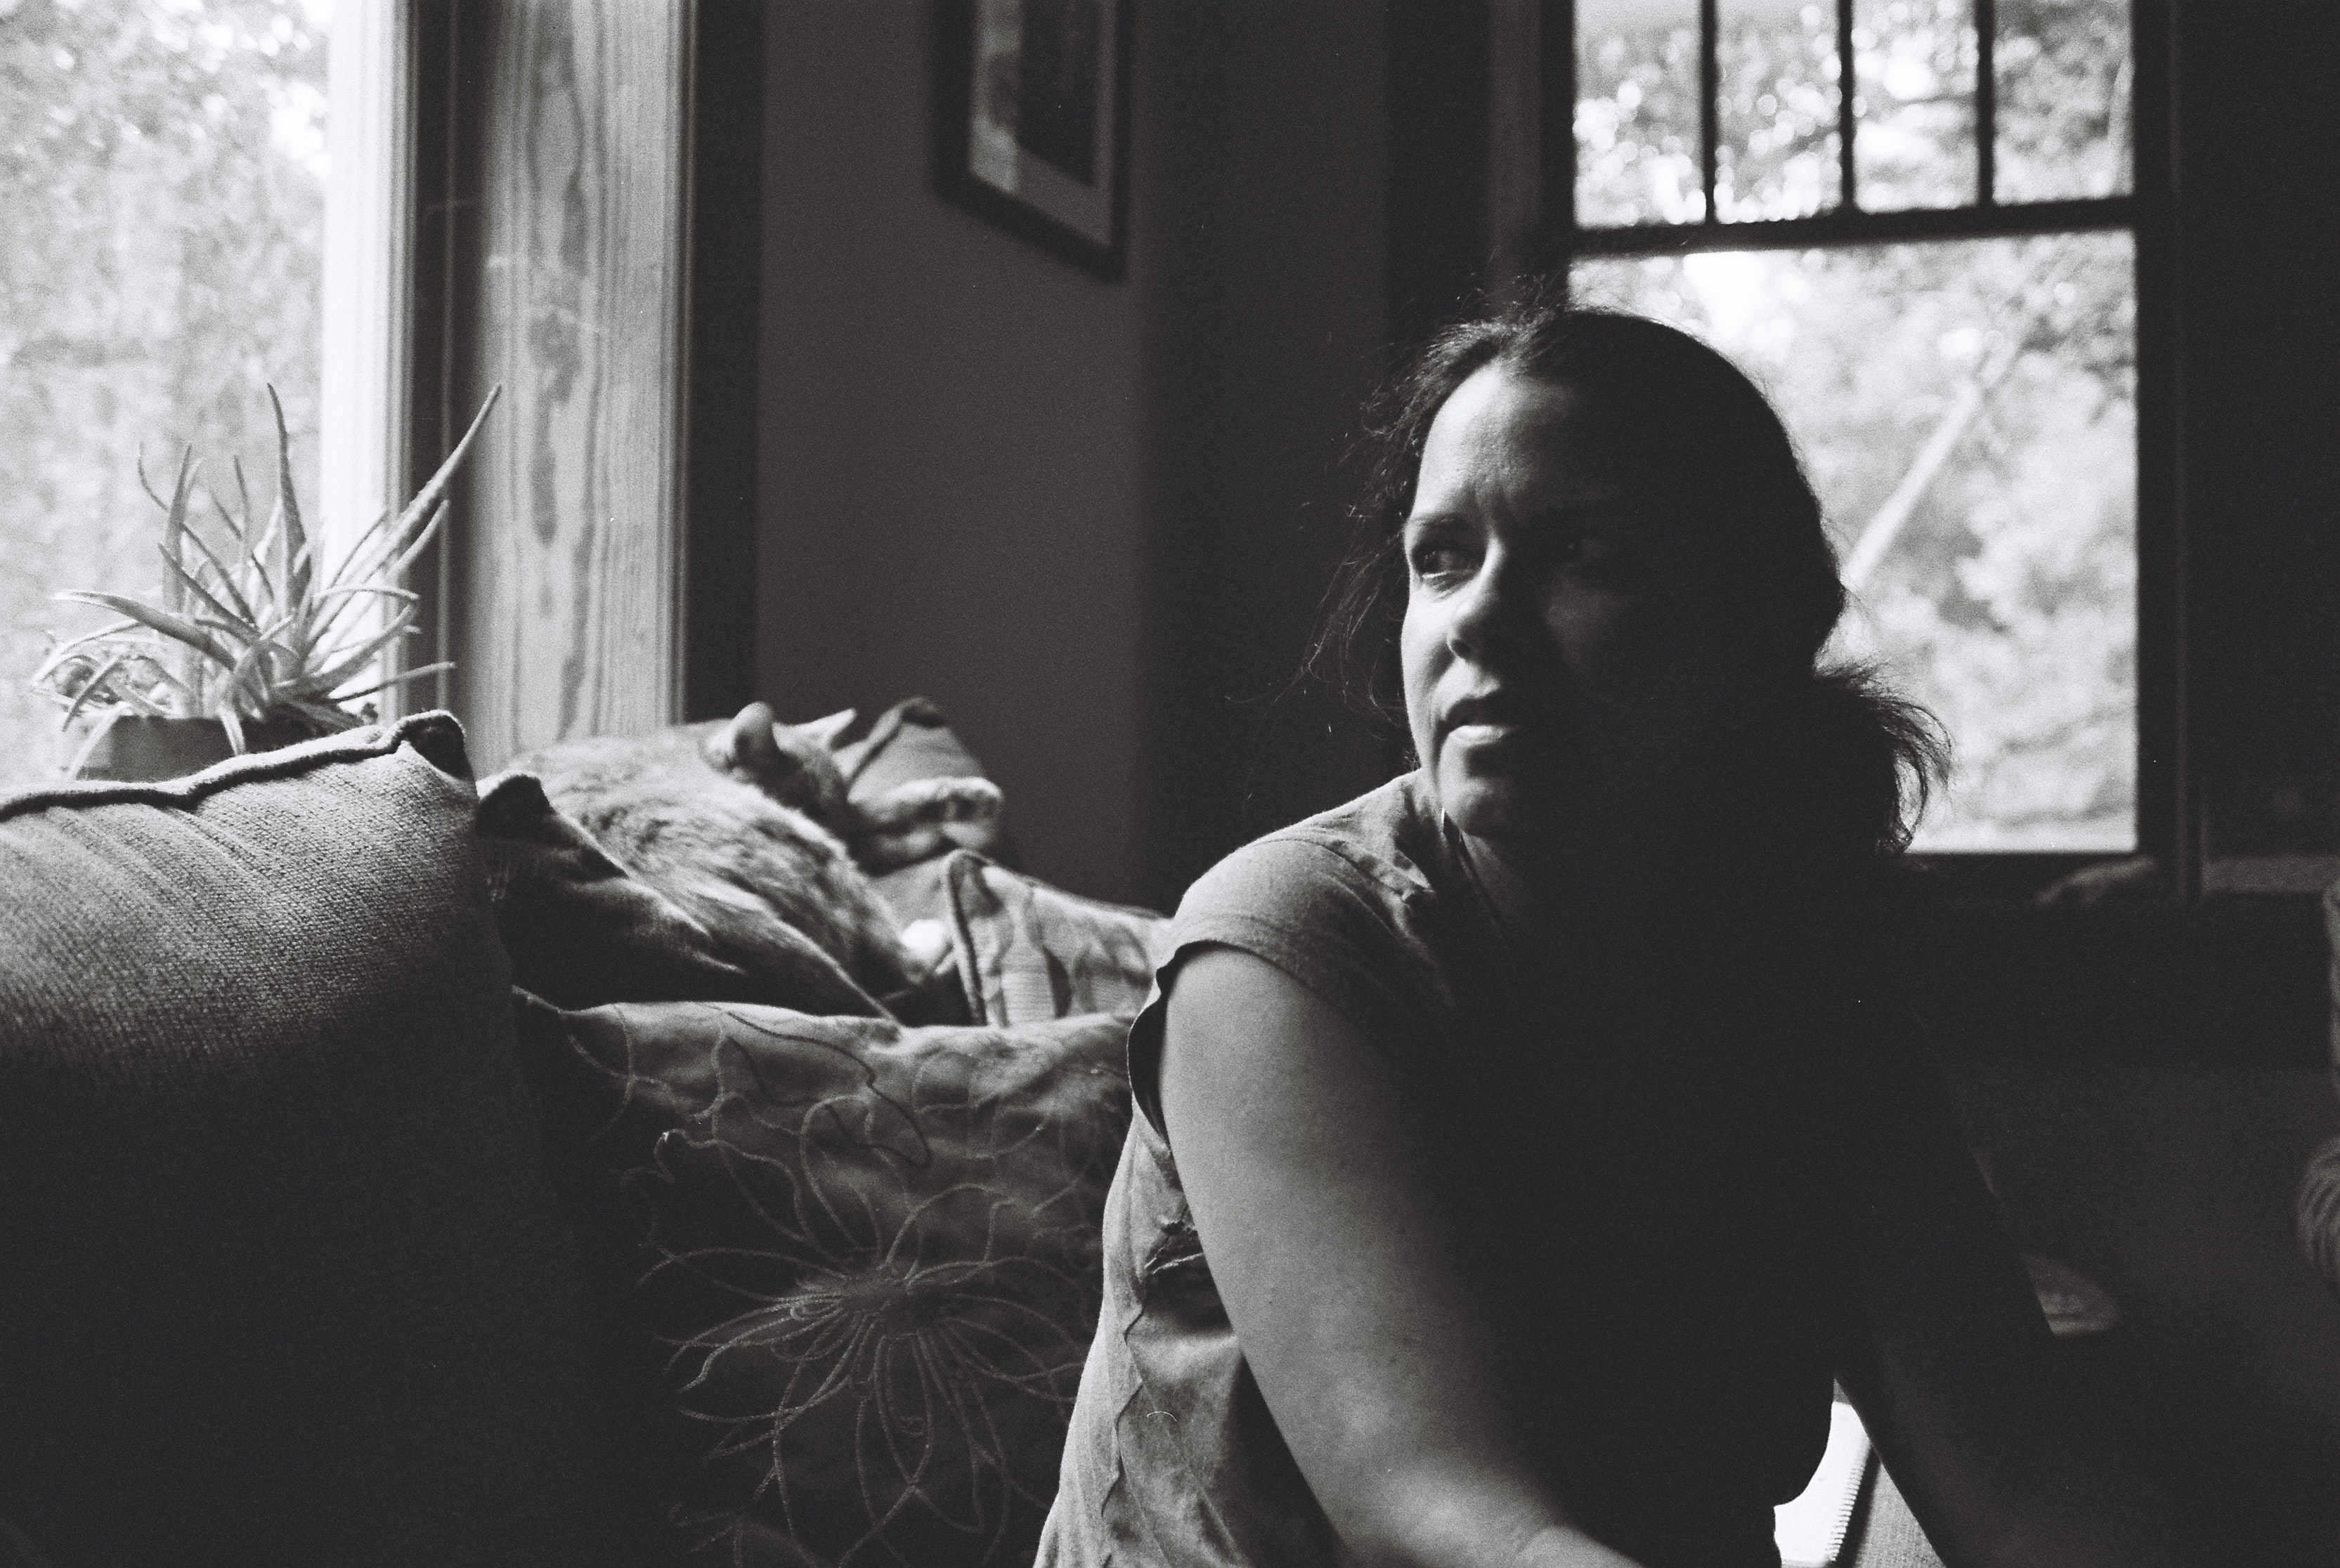 grayscale photography of woman inside room